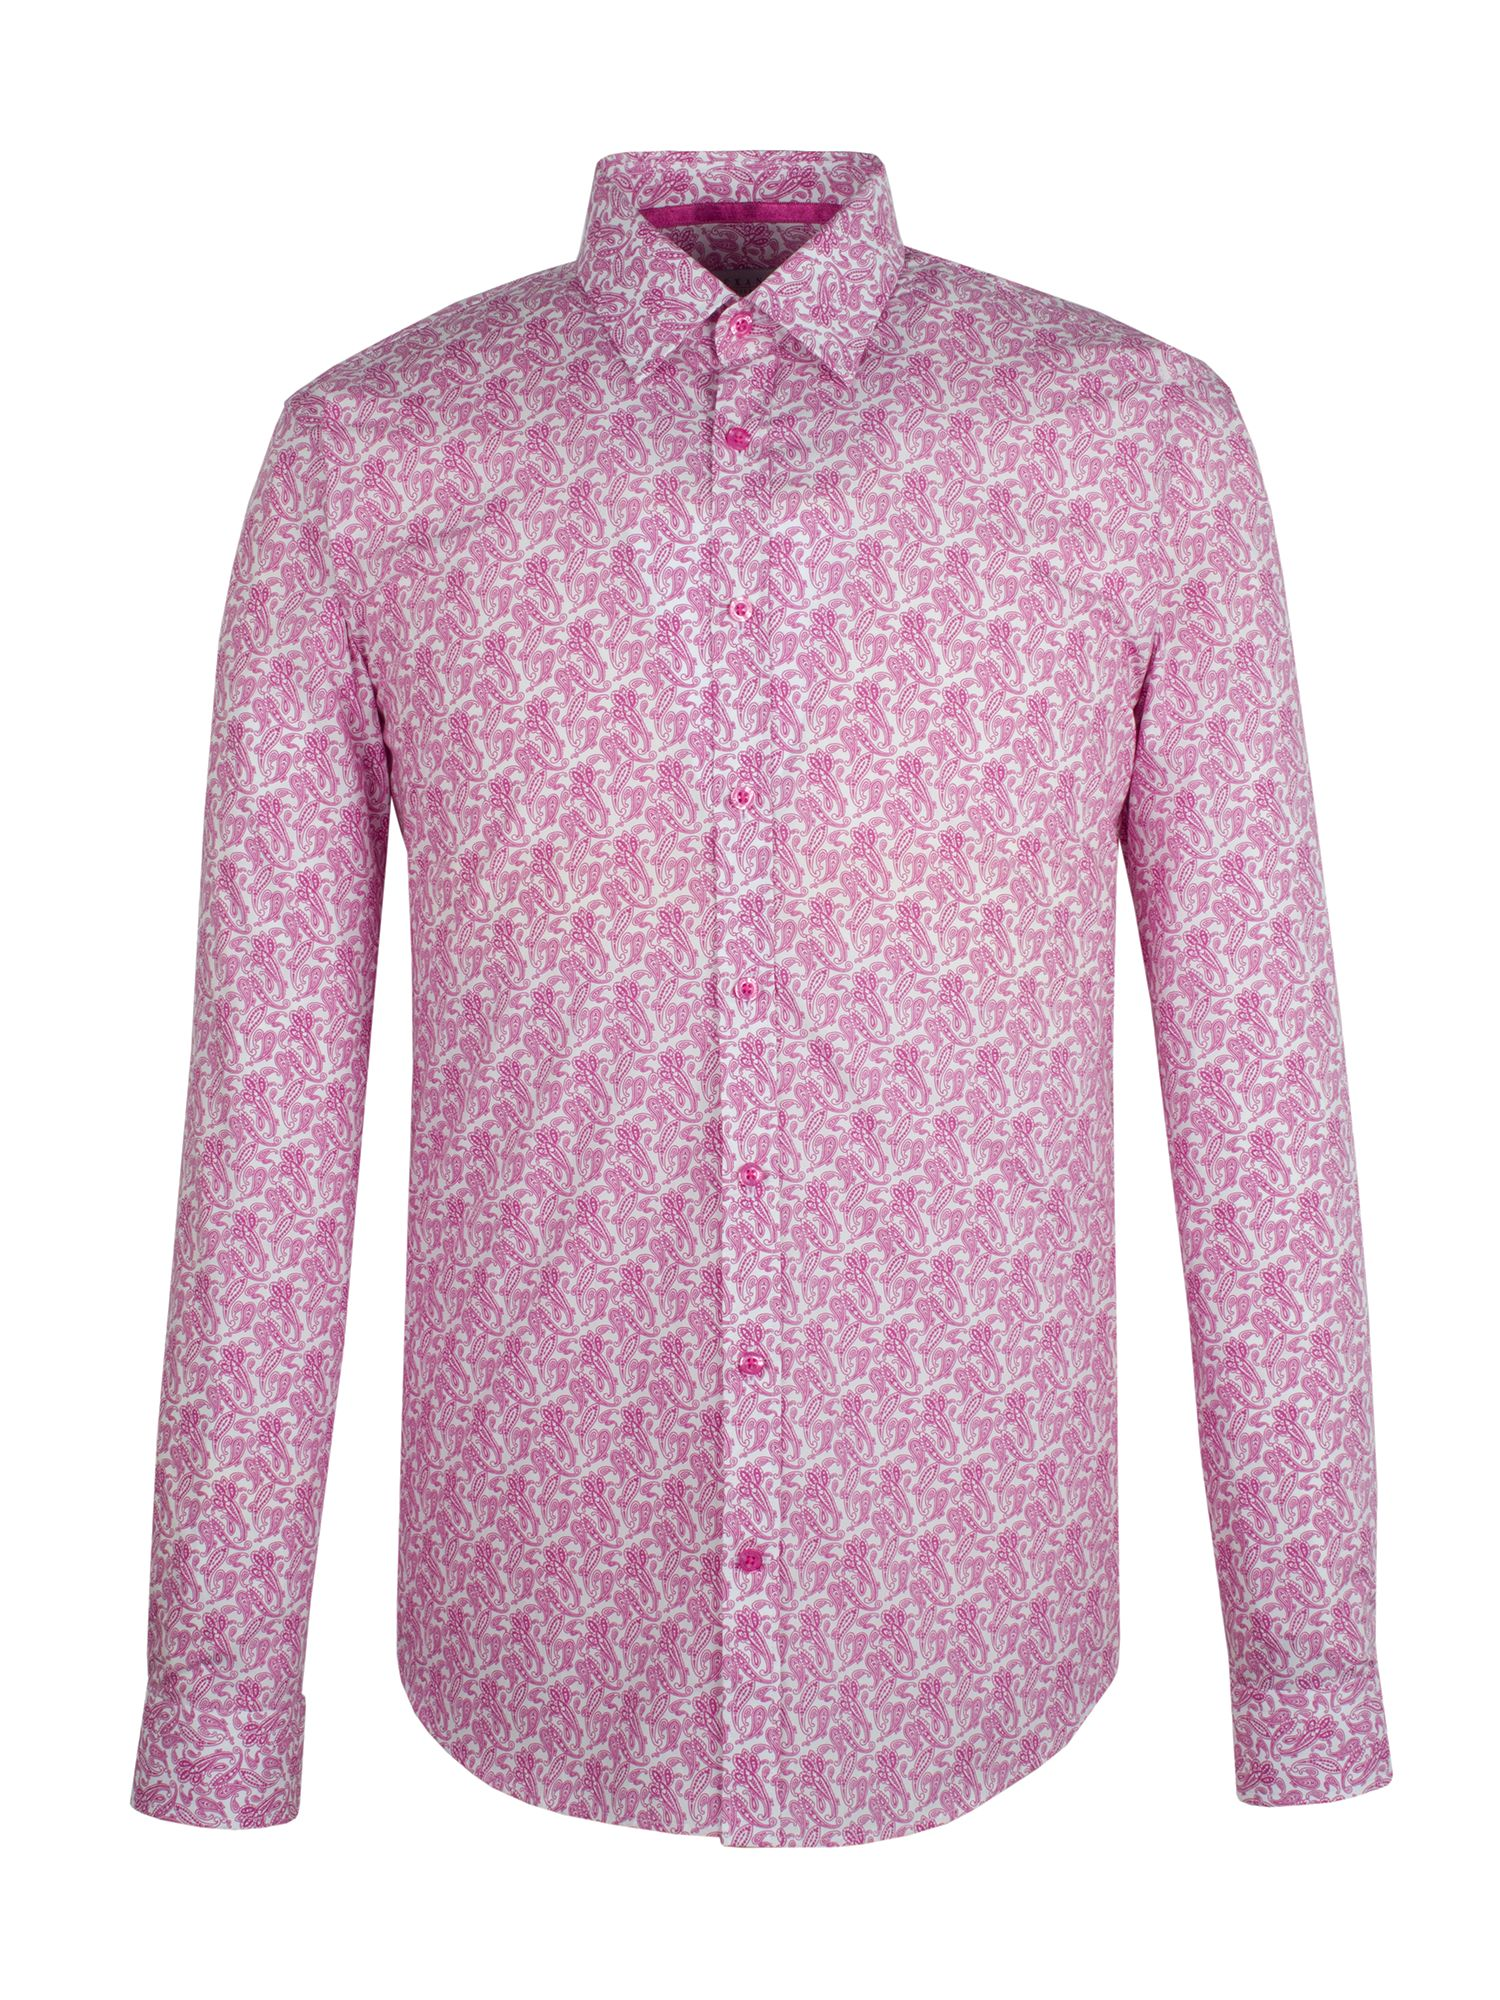 Men's Alexandre Savile Row Pink organic paisley slim fit shirt, Pink